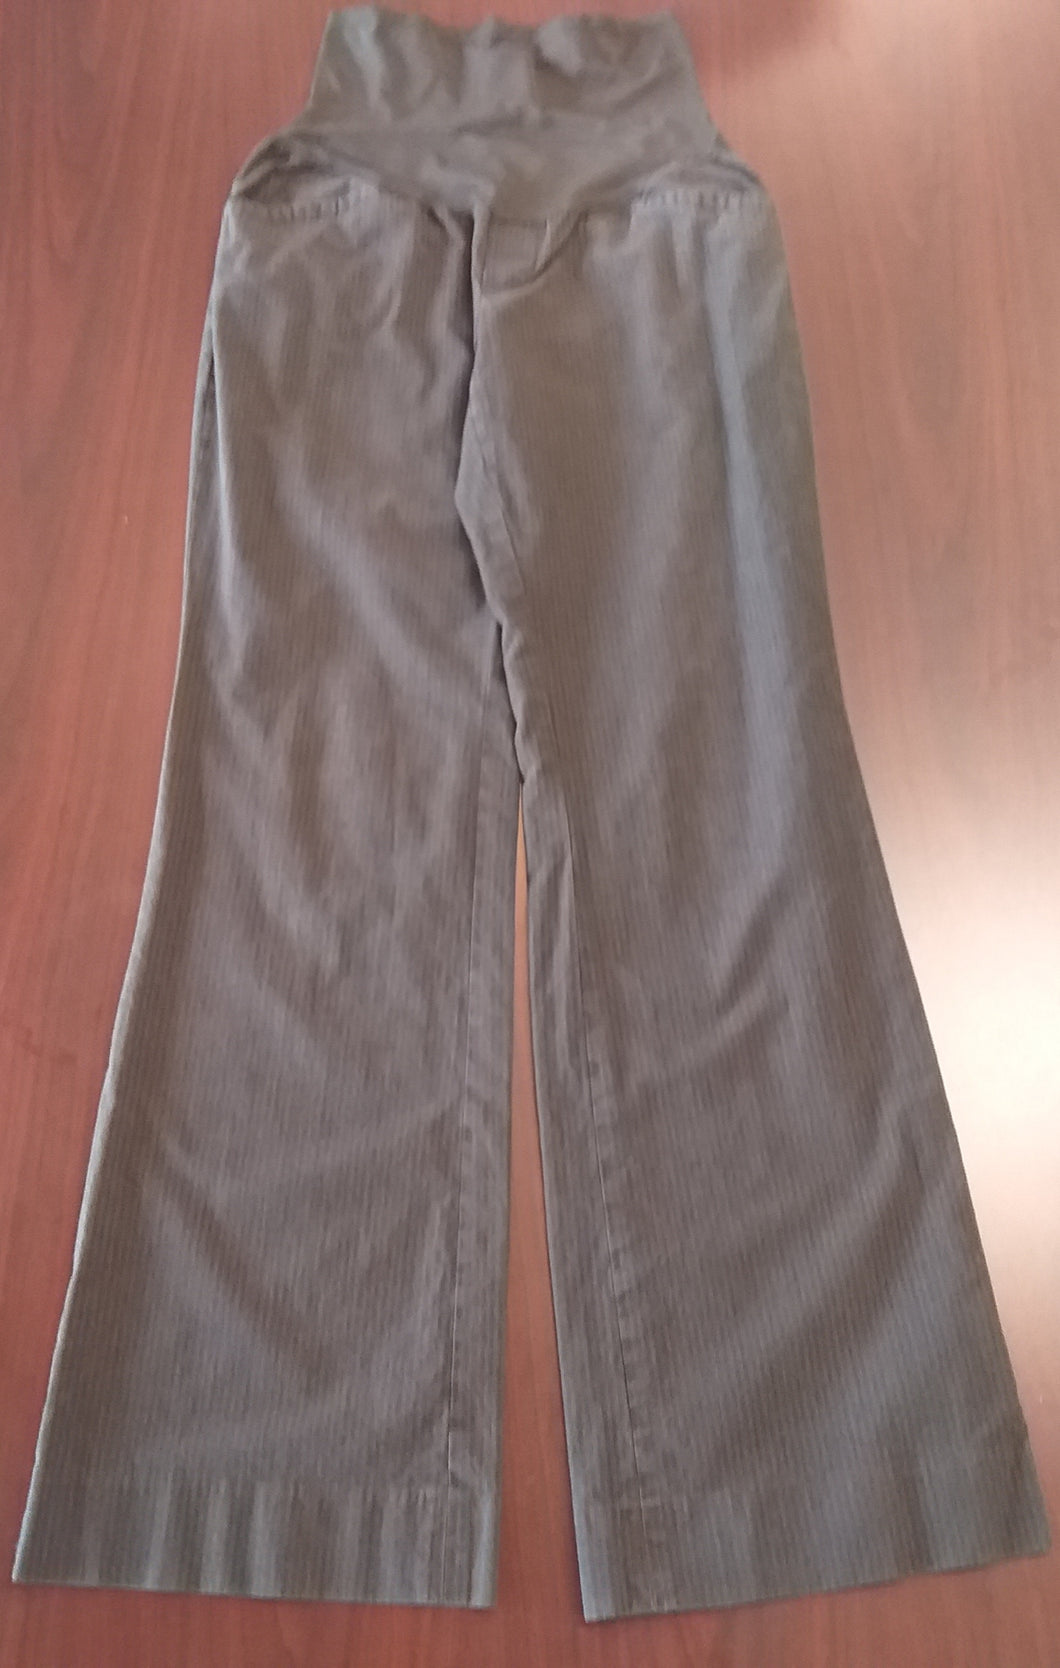 Size 6 Tall Full Panel Dark Gray Maternity Pants